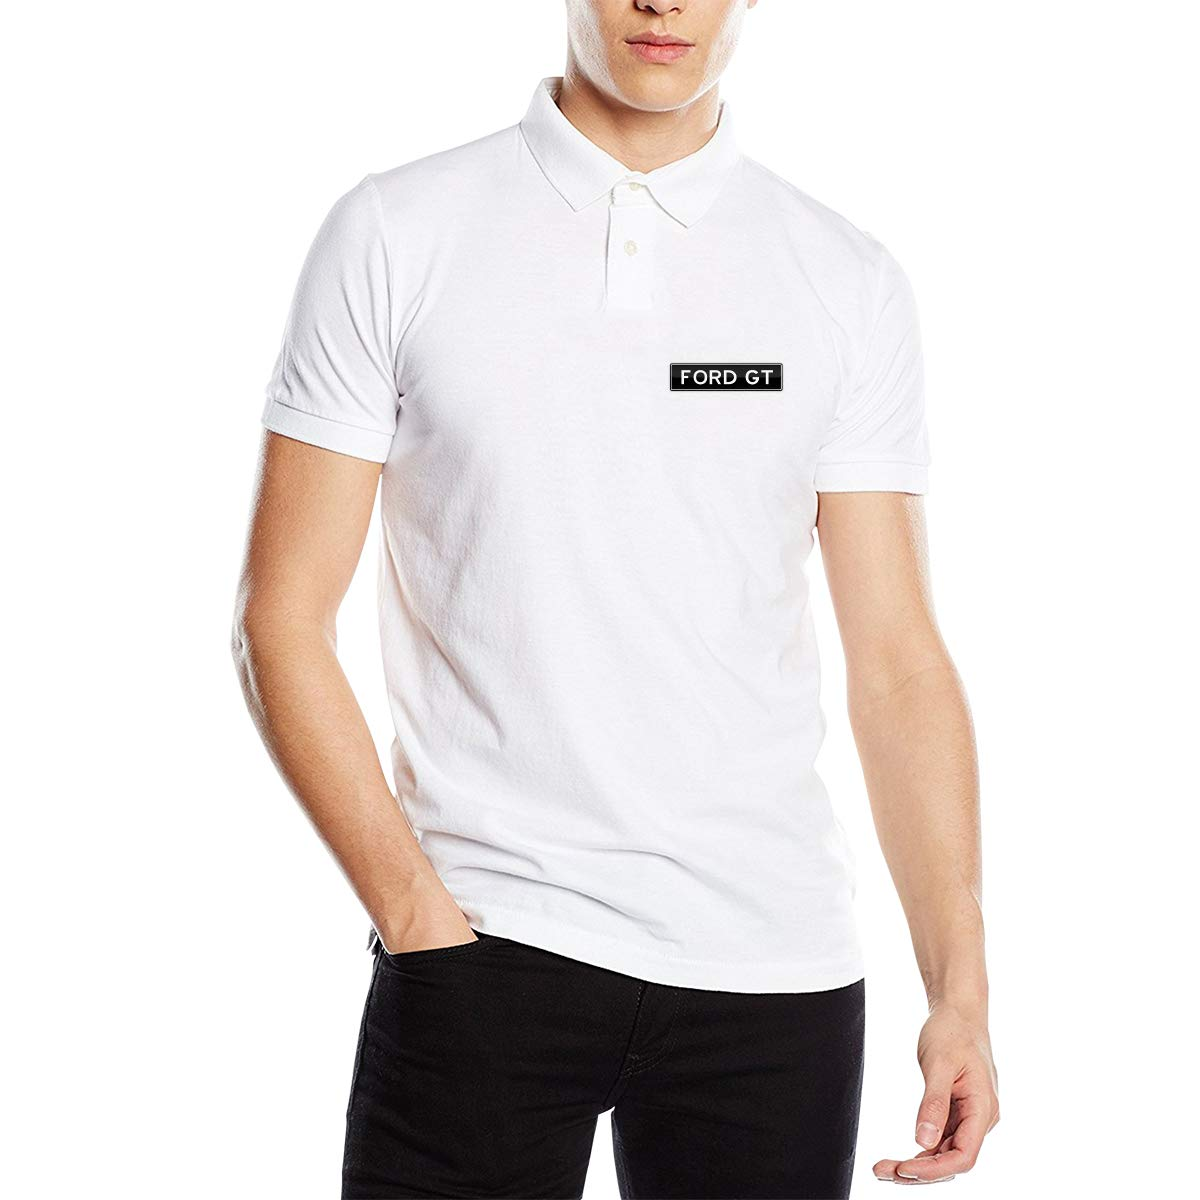 Ford GT Logo Mens Fit Short Sleeve Polo Shirt Tee